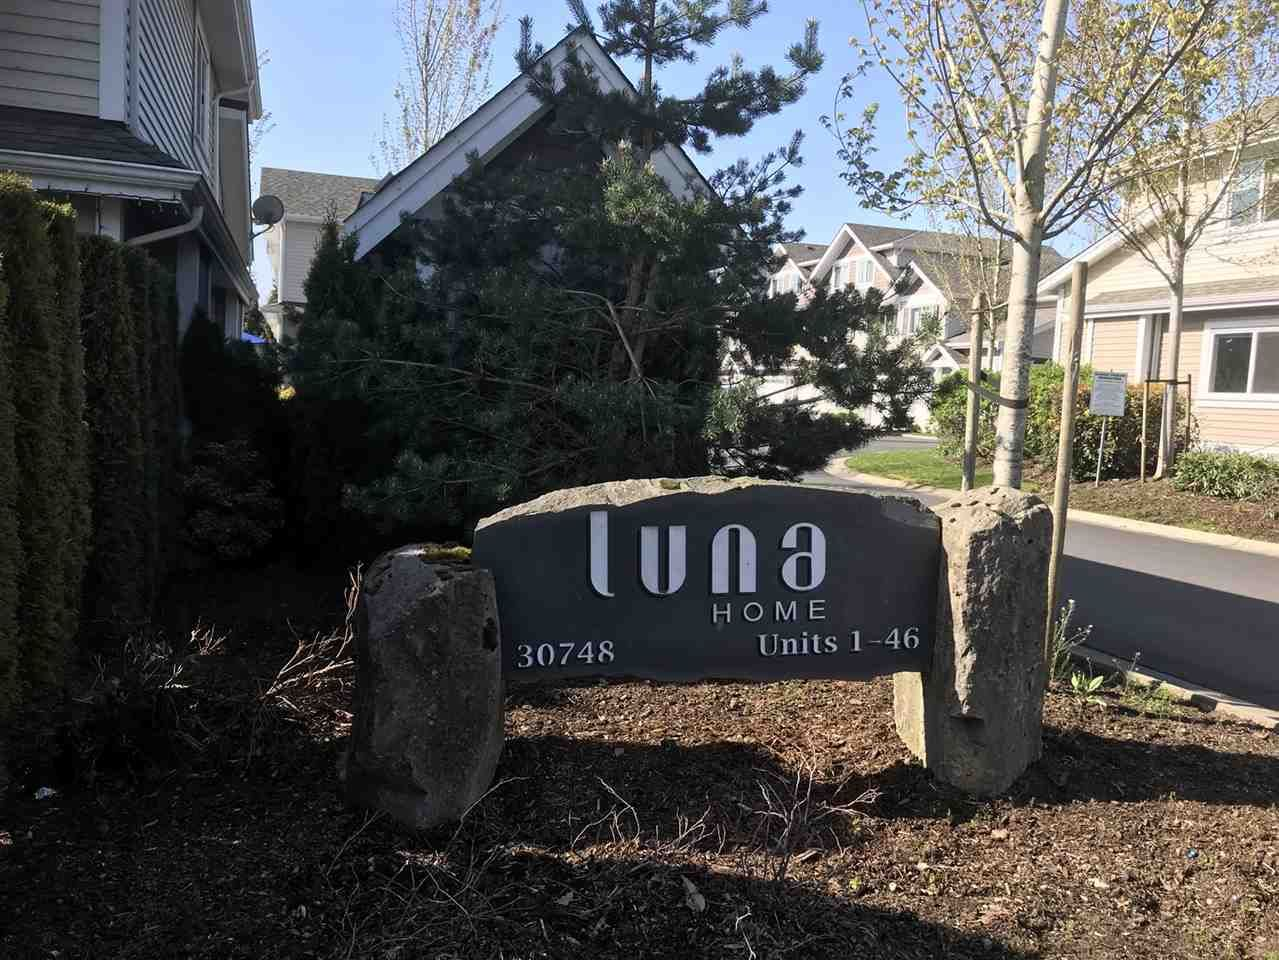 """Main Photo: 20 30748 CARDINAL Avenue in Abbotsford: Abbotsford West Townhouse for sale in """"LUNA HOMES"""" : MLS®# R2267478"""